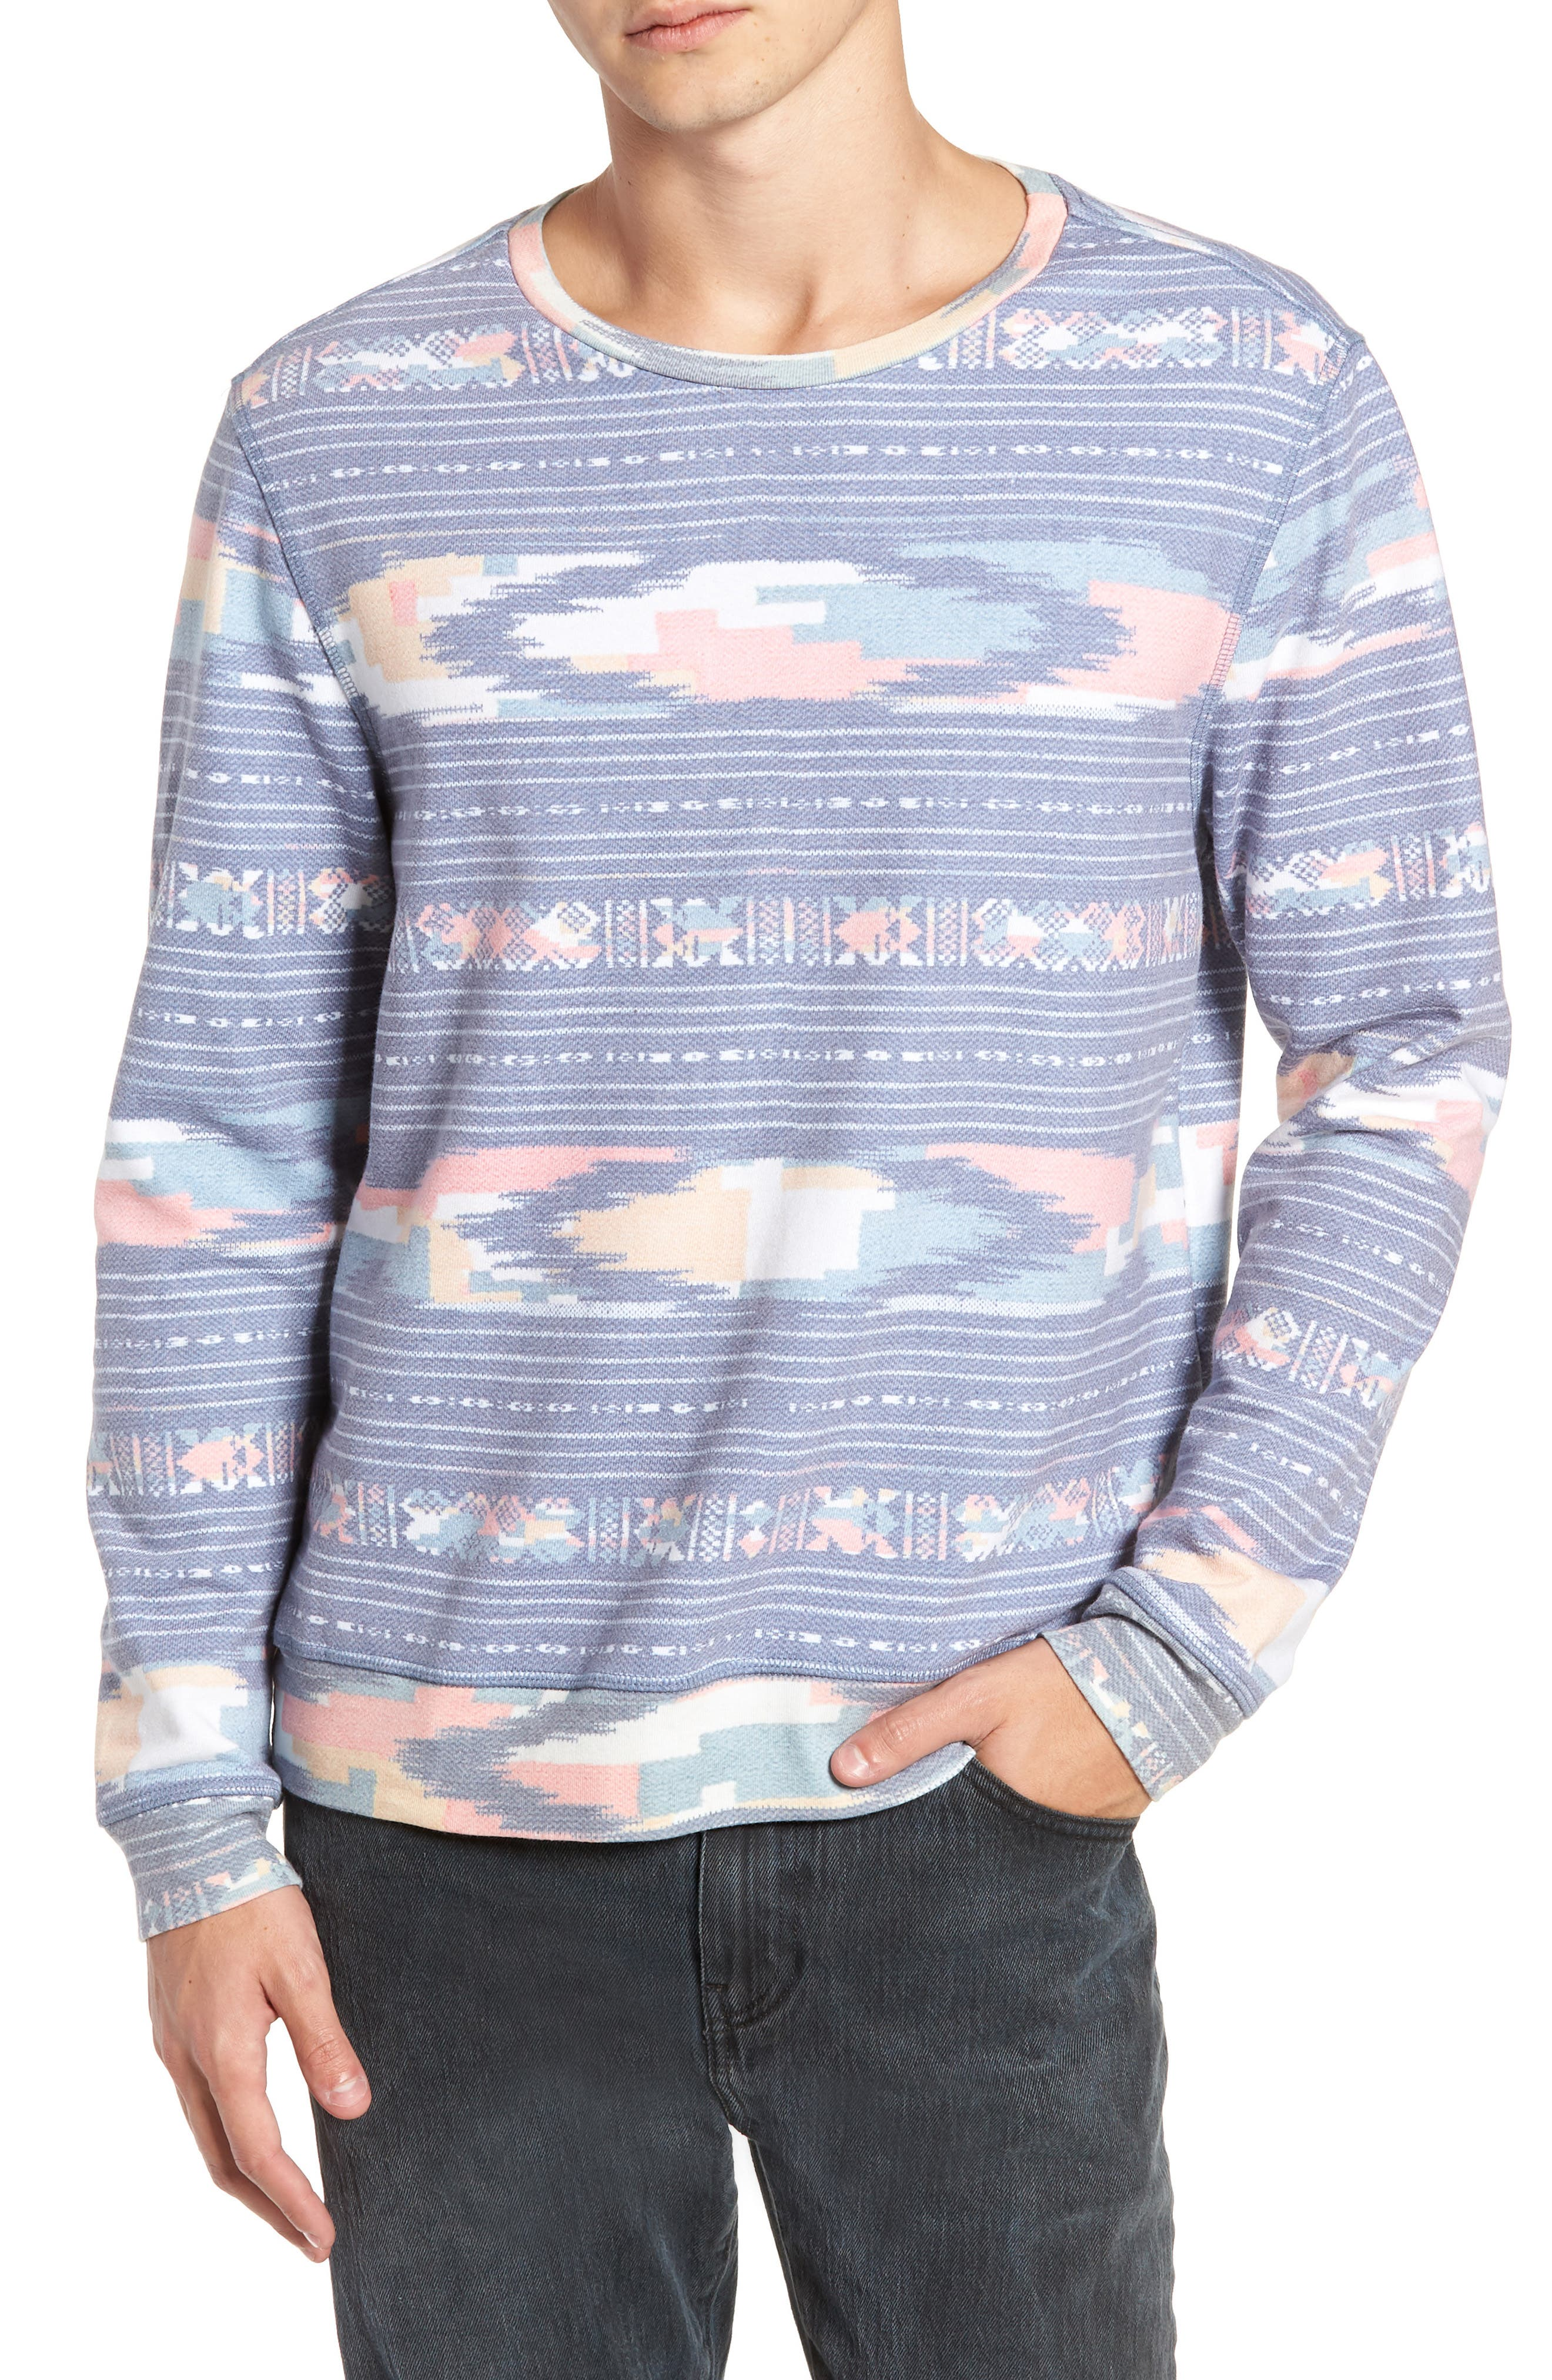 Sunset Ikat Crewneck Pullover,                             Main thumbnail 1, color,                             400